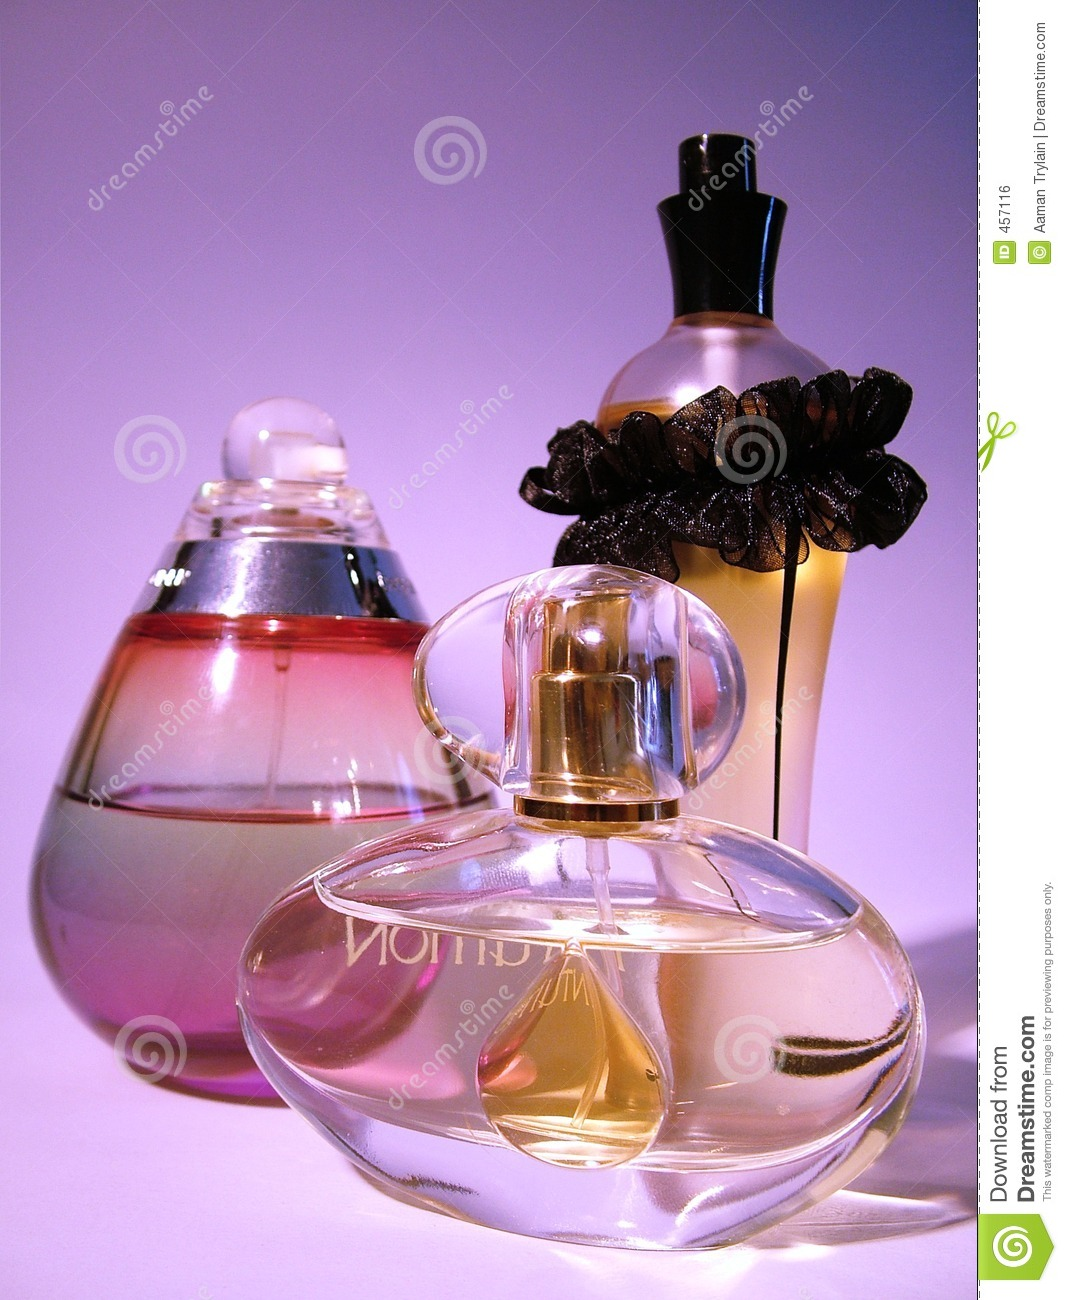 Download Perfume stock photo. Image of woman, generic, bottle, toilette - 457116